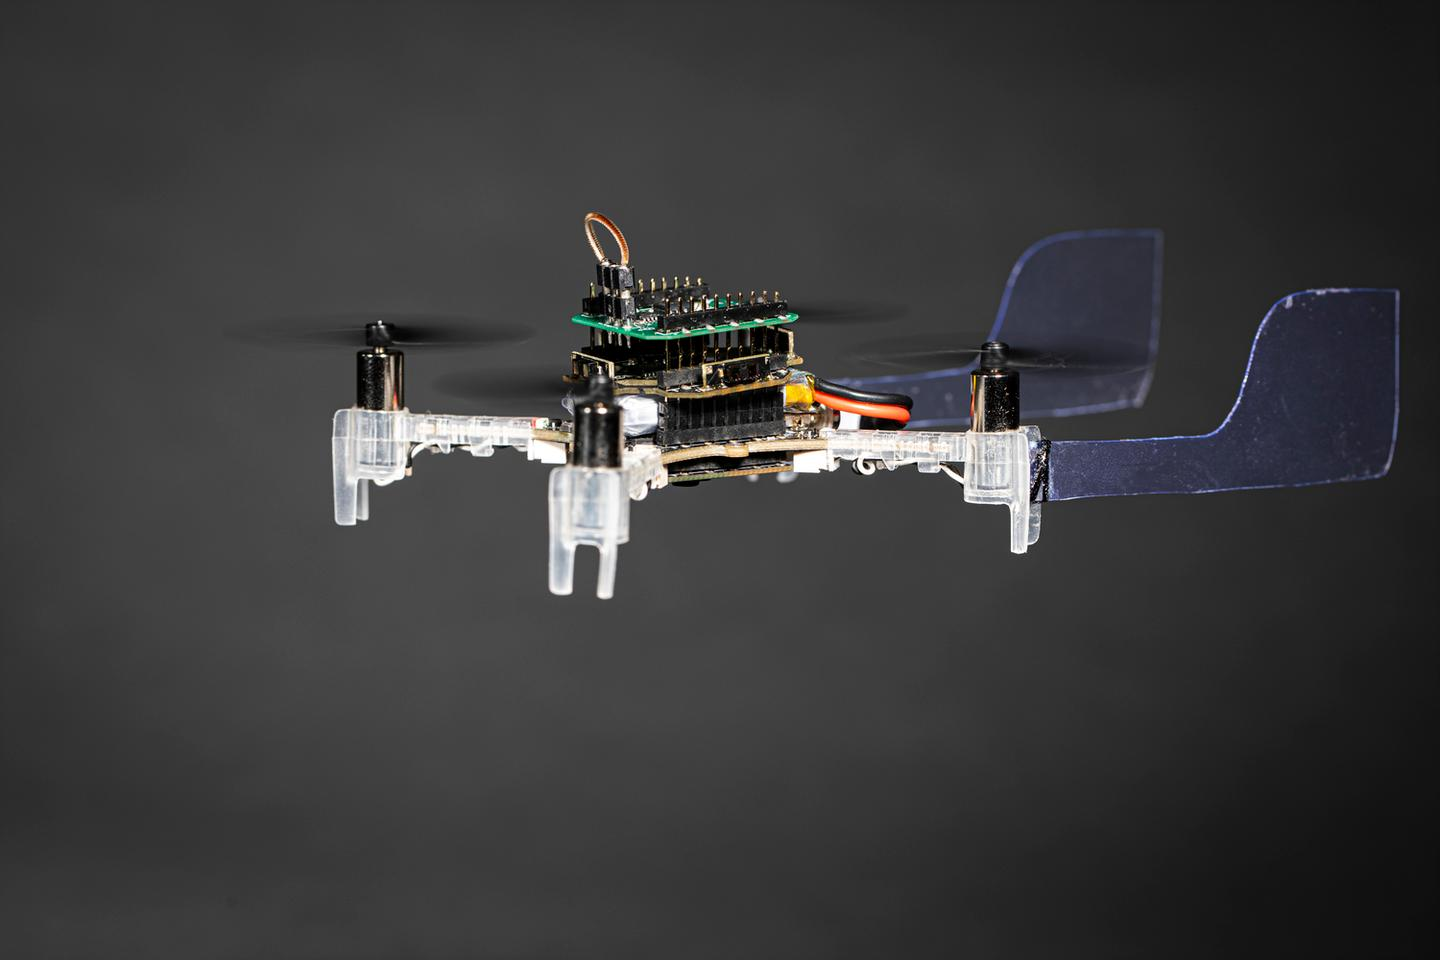 The Smellicopter is a drone that uses a live moth antenna as a smell sensor